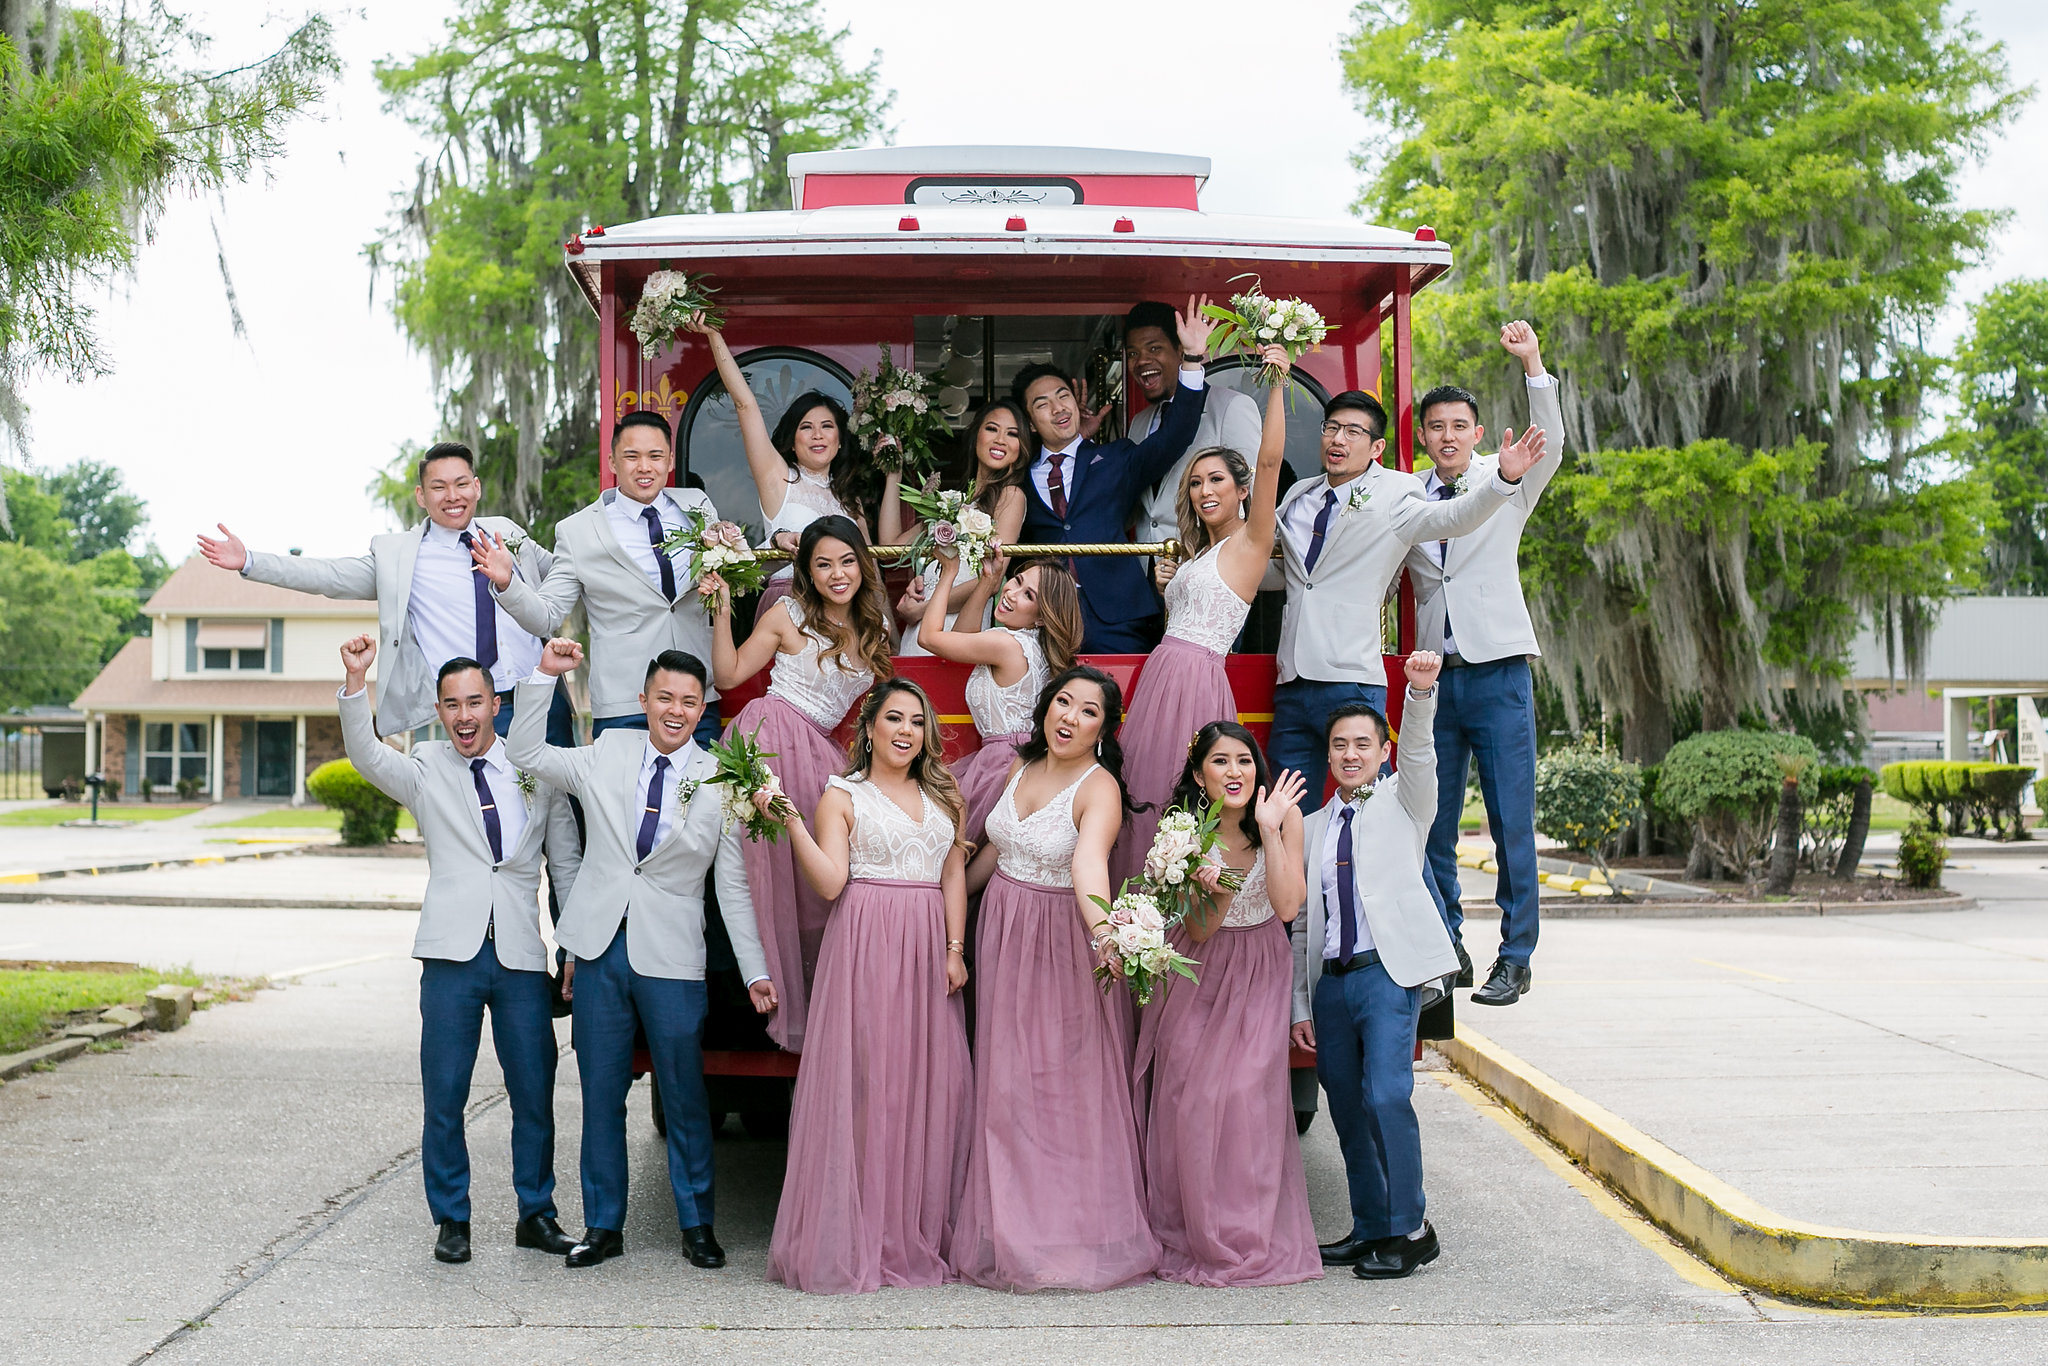 New Orleans Wedding Photography Destination David Kim-20.jpg